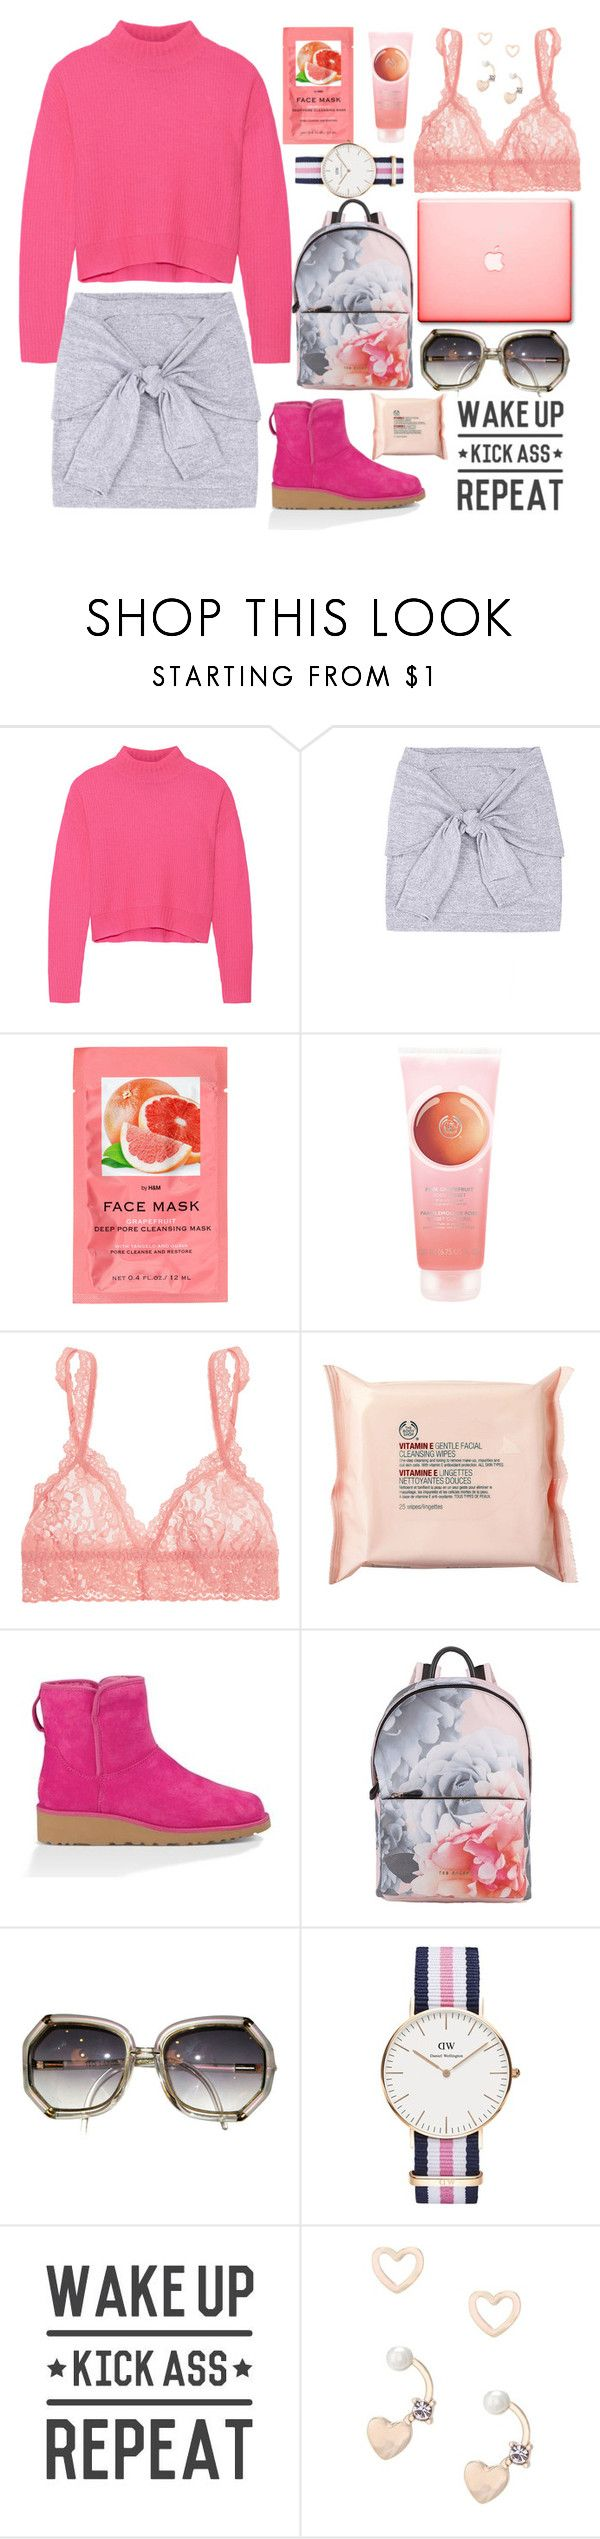 """My Mood Today"" by lidia-solymosi ❤ liked on Polyvore featuring Line, H&M, The Body Shop, Hanky Panky, UGG Australia, Ted Baker, Daniel Wellington, WALL, Lipsy and thisisugg"